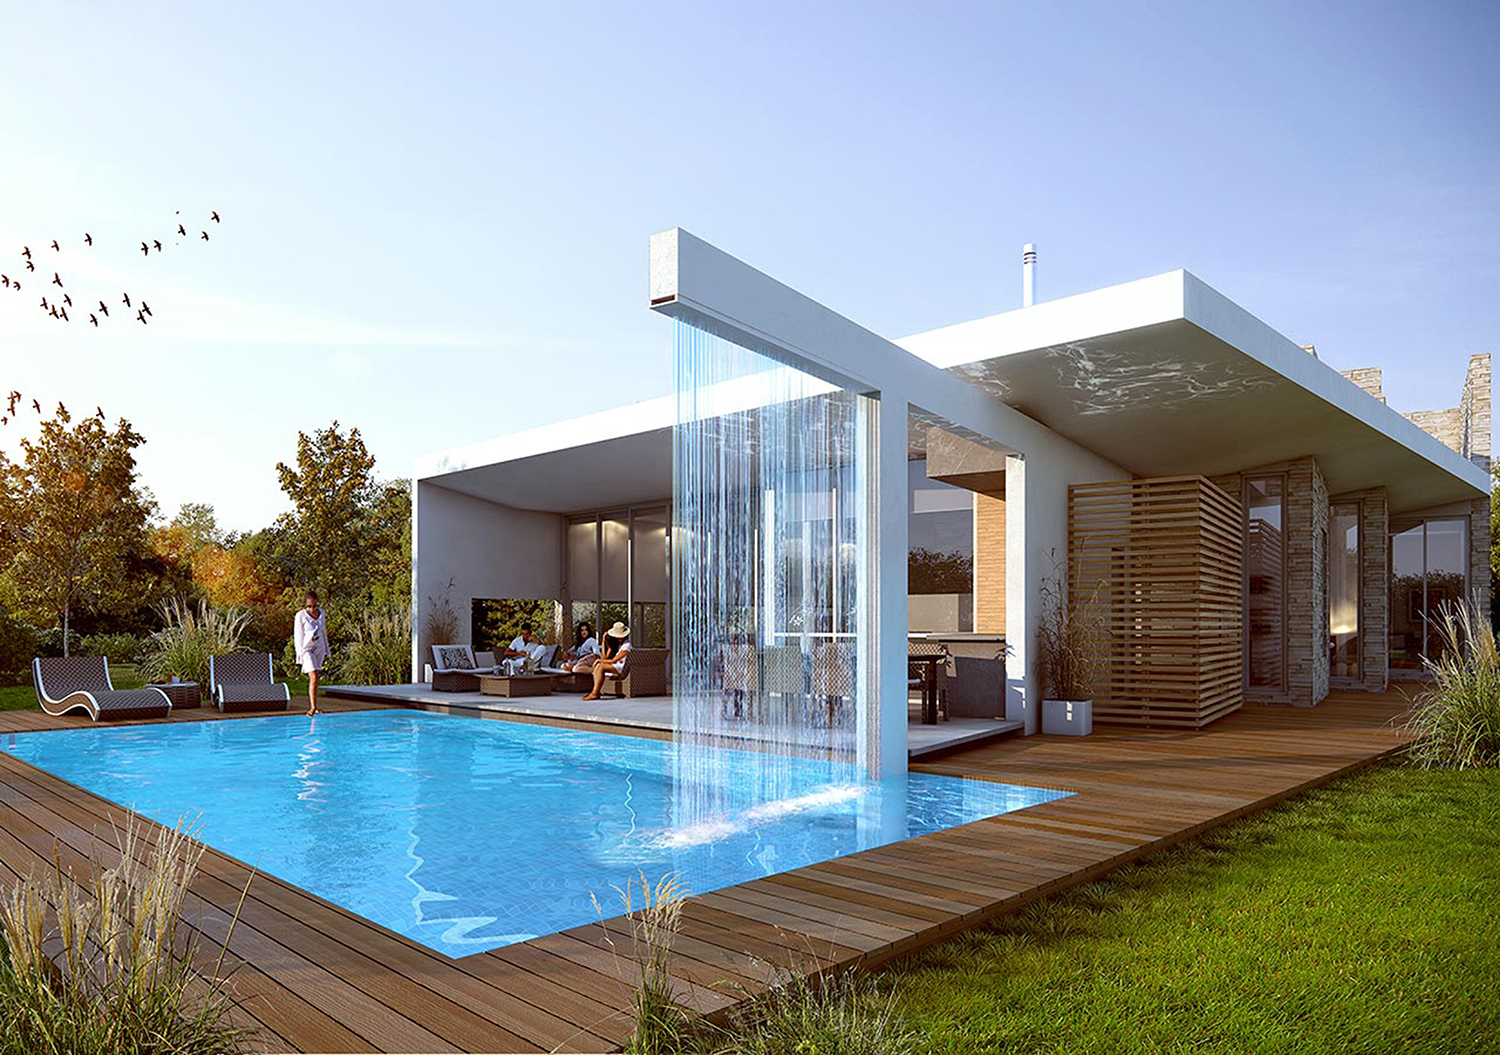 Jma jorge mastropietro architects atelier for Piscine xs